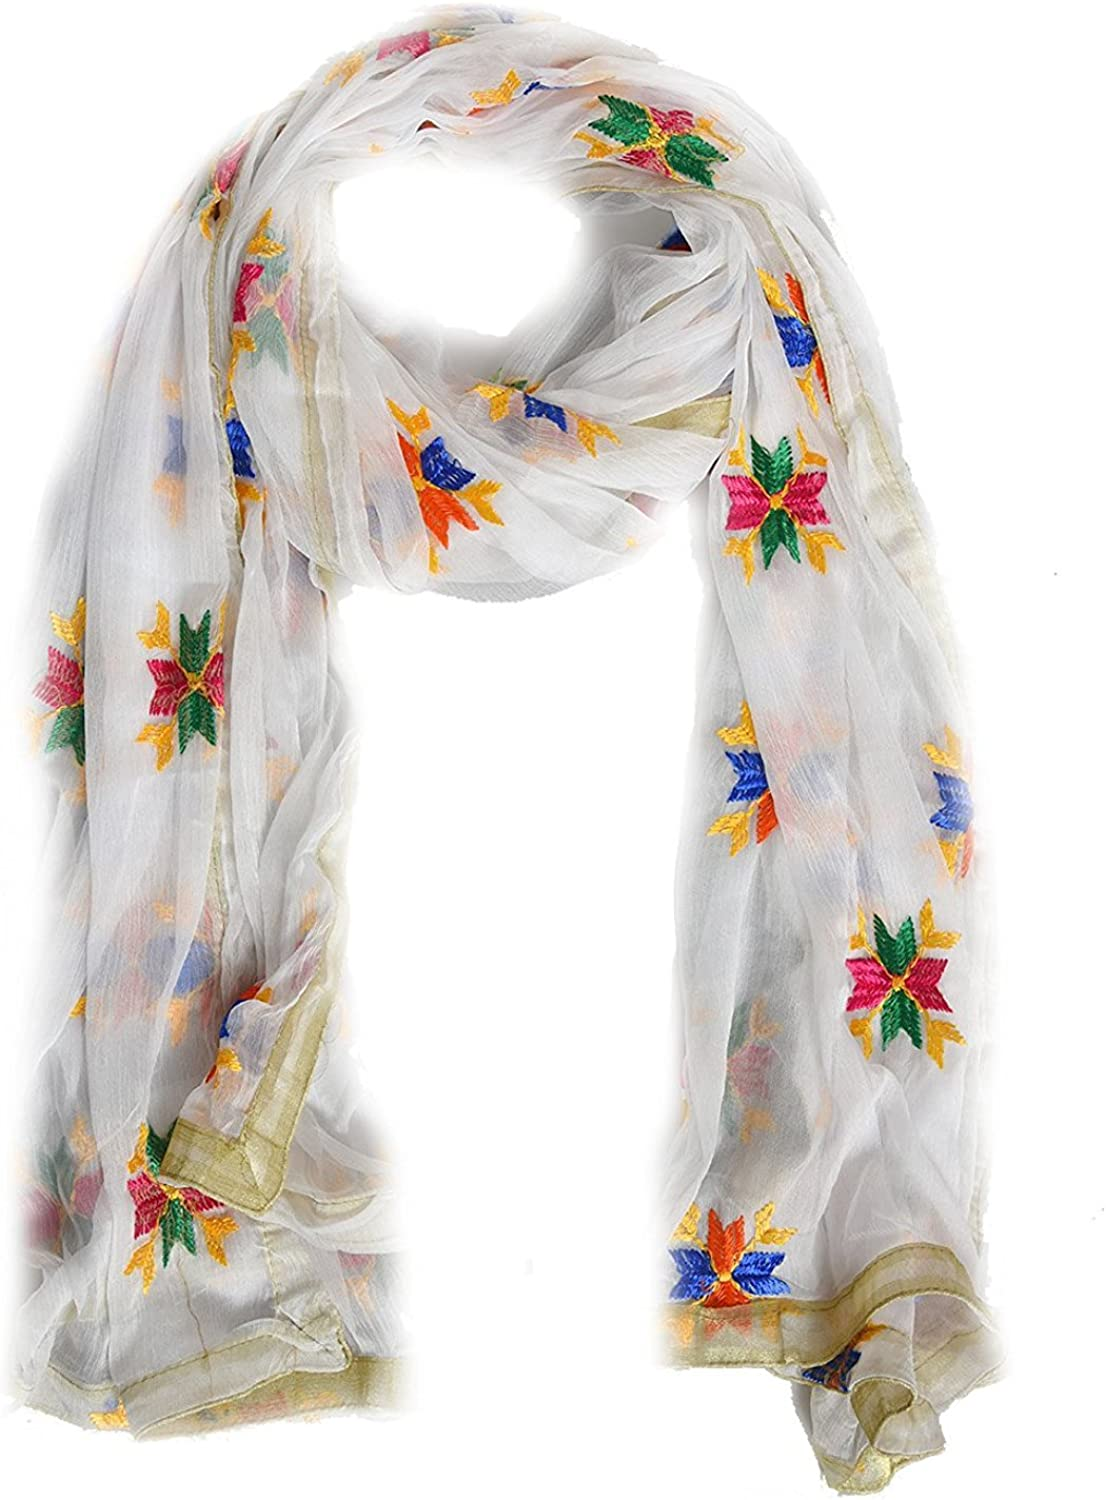 Embroidered Pulkari Scarf// Dupatta